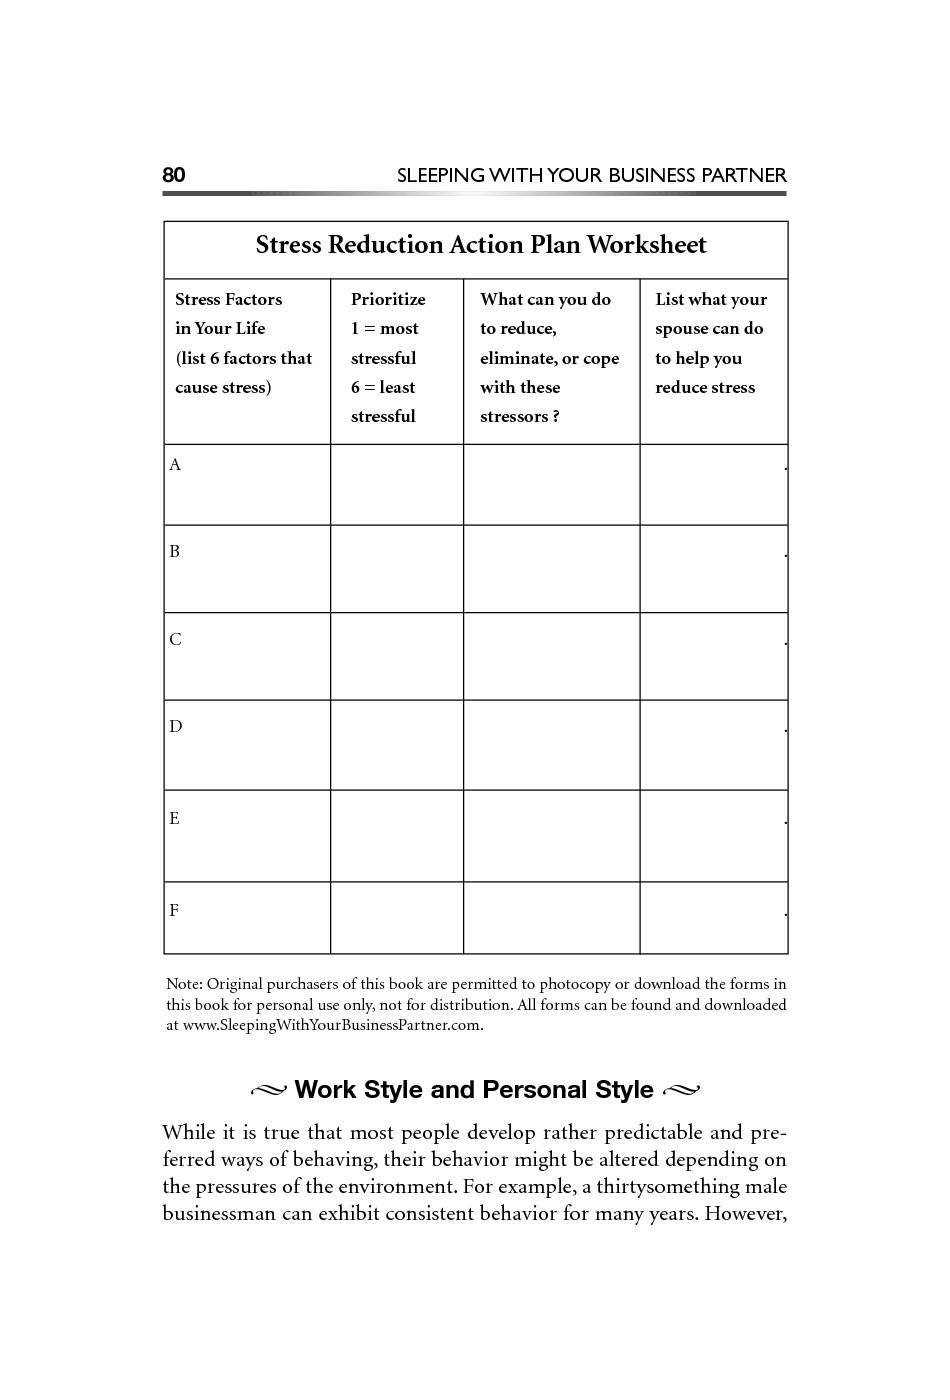 worksheet Anxiety Management Worksheets coping with stress worksheets bing images pinterest should you have a passion for getting rid of anxiety youll will really like our info management worksheets